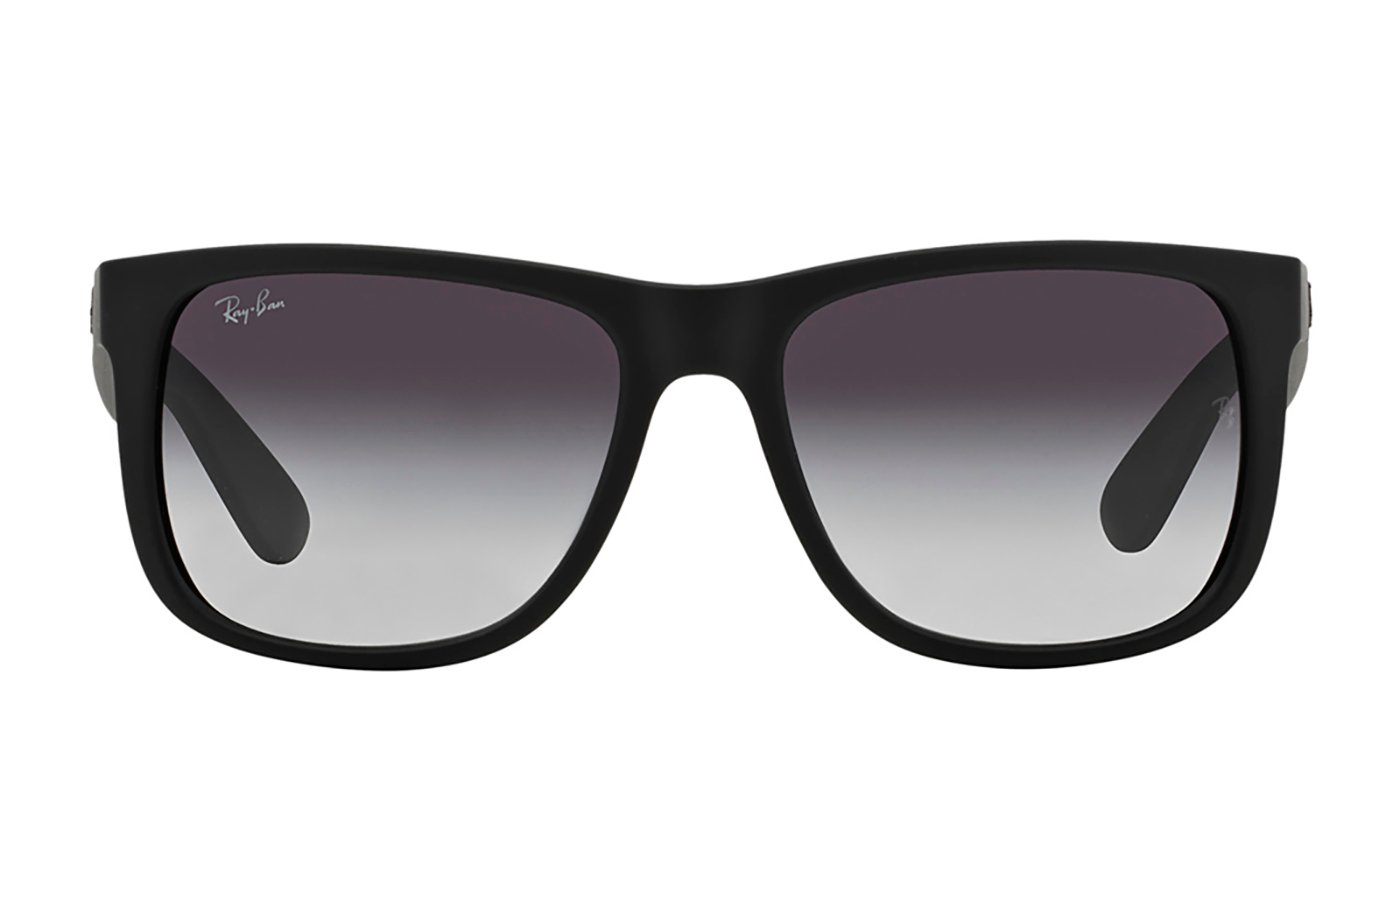 RAY-BAN JUSTIN 0RB4165 55 601/8G RUBBER BLACK